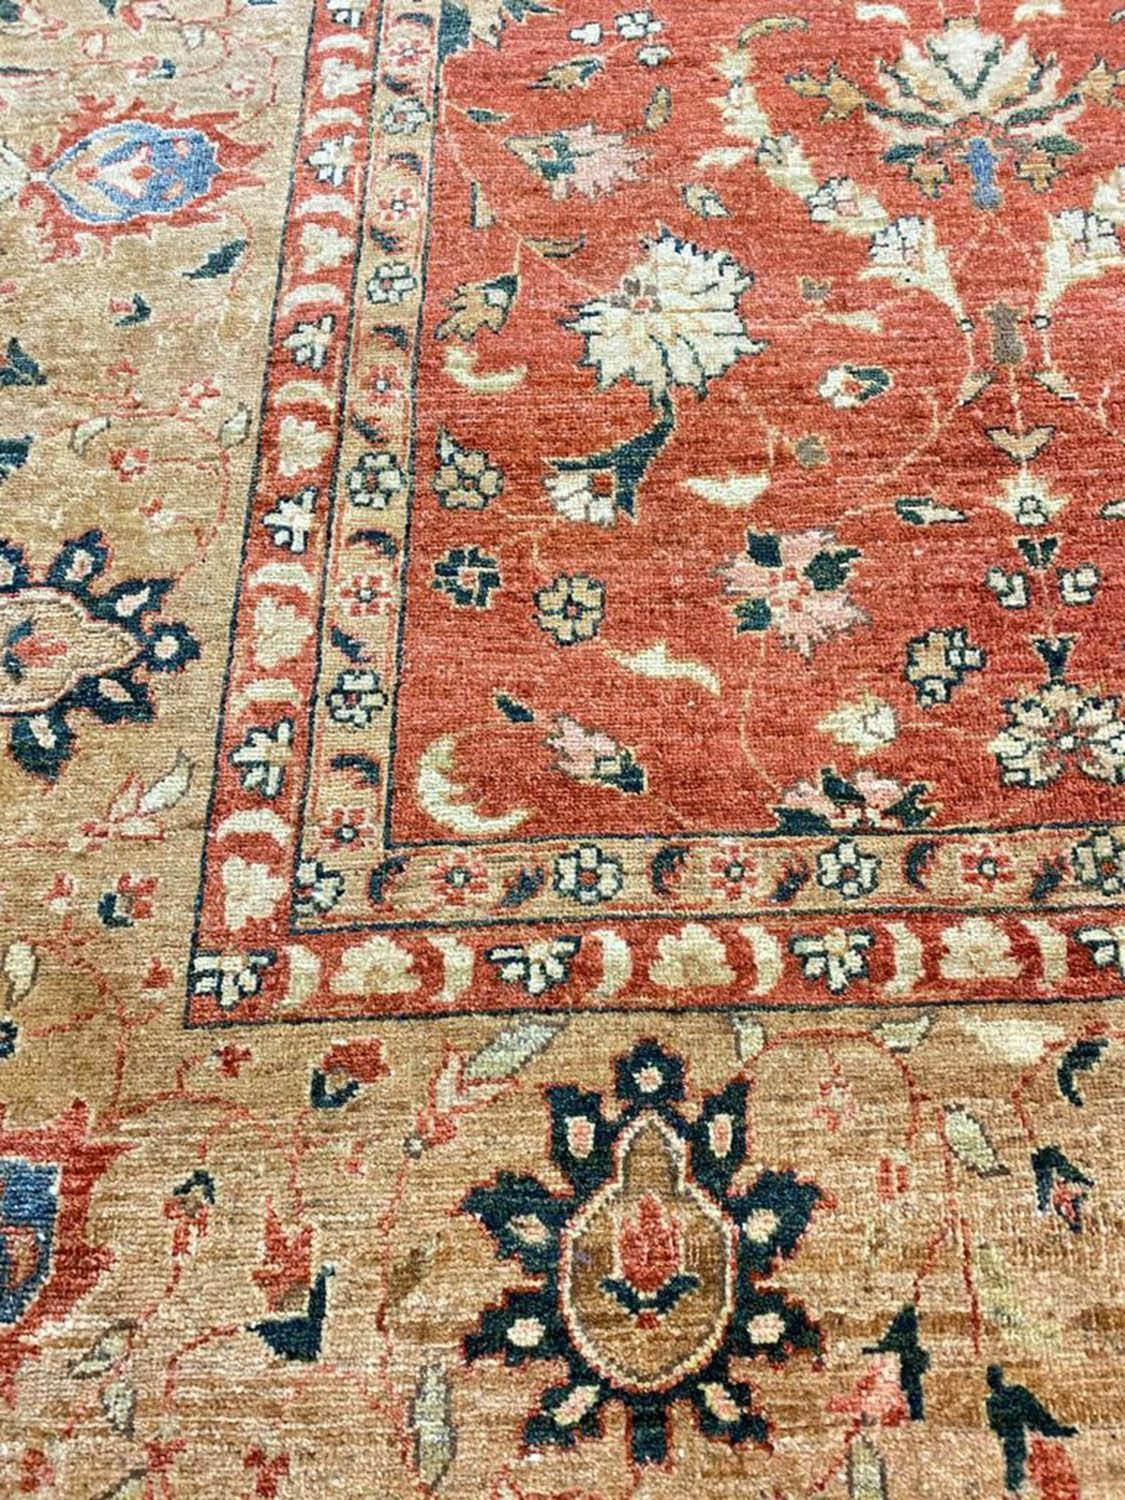 FINE BAKSHAISH DESIGN CARPET, 371cm x 273cm. - Image 5 of 5